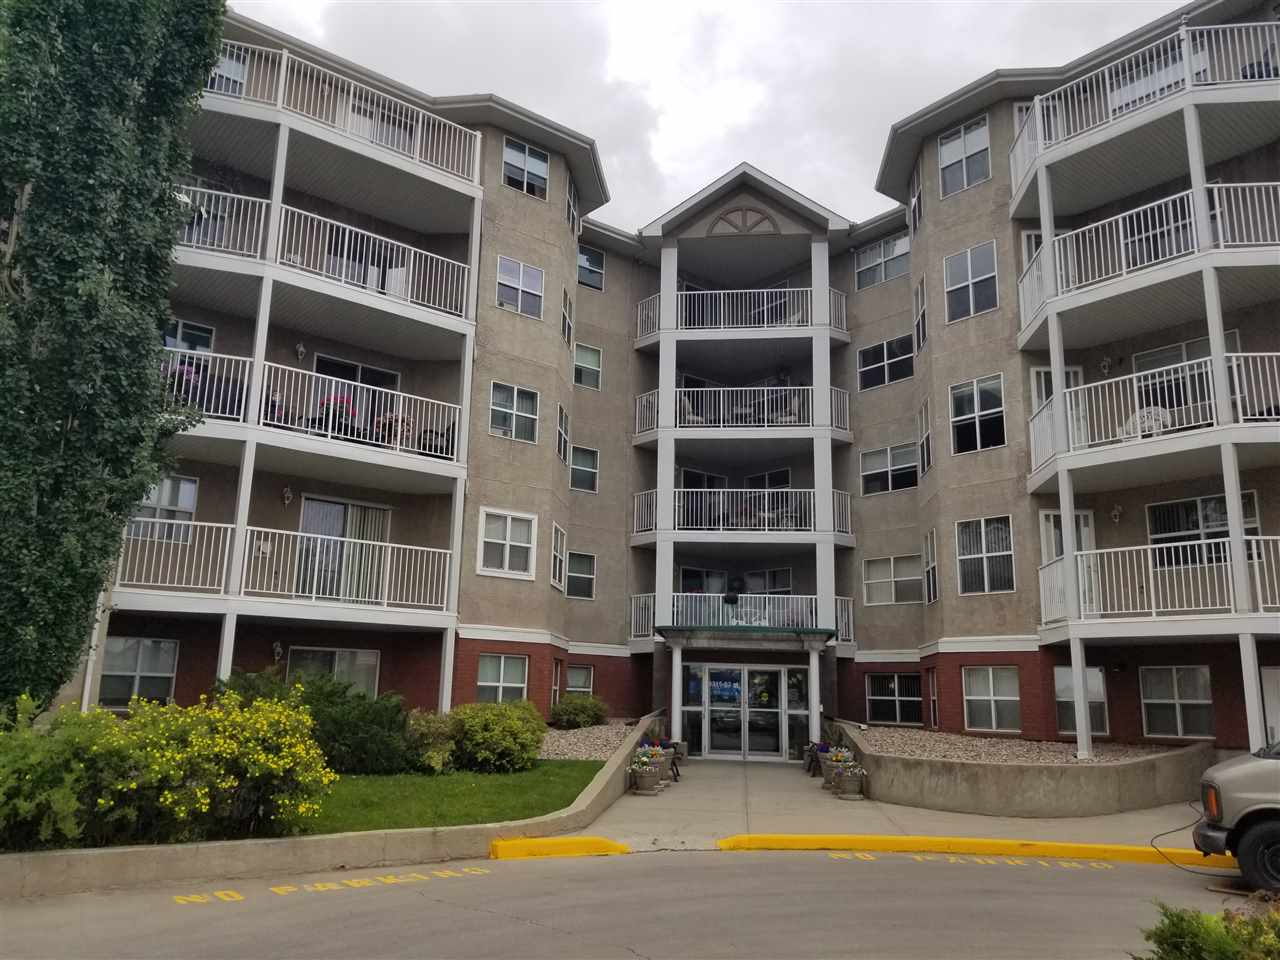 MLS® listing #E4154403 for sale located at 505 8315 83 Street NW